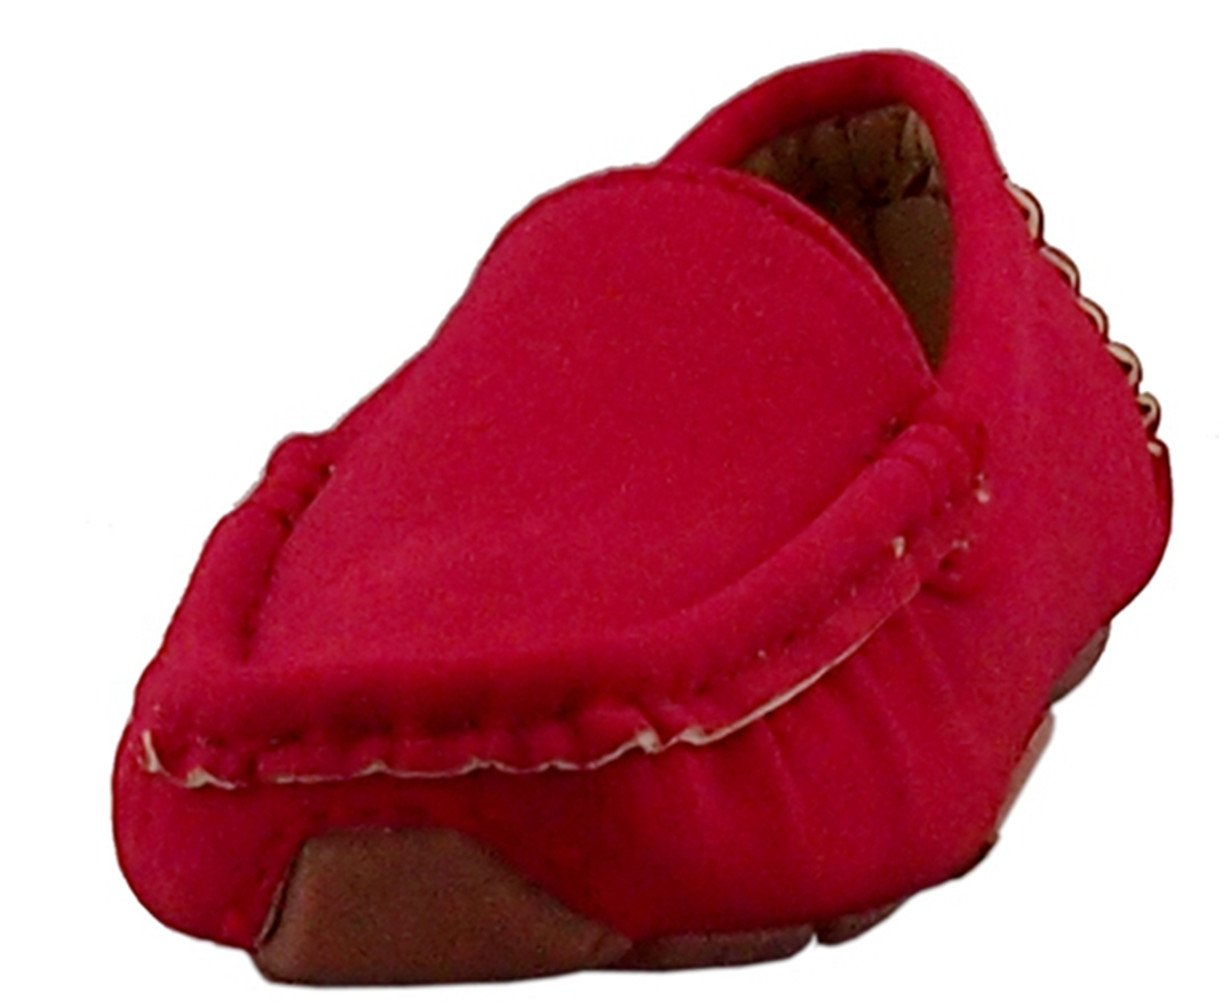 DADAWEN Girl's Boy's Suede Slip-on Loafers Oxford Shoes Red US Size 6.5 M Toddler by DADAWEN (Image #7)